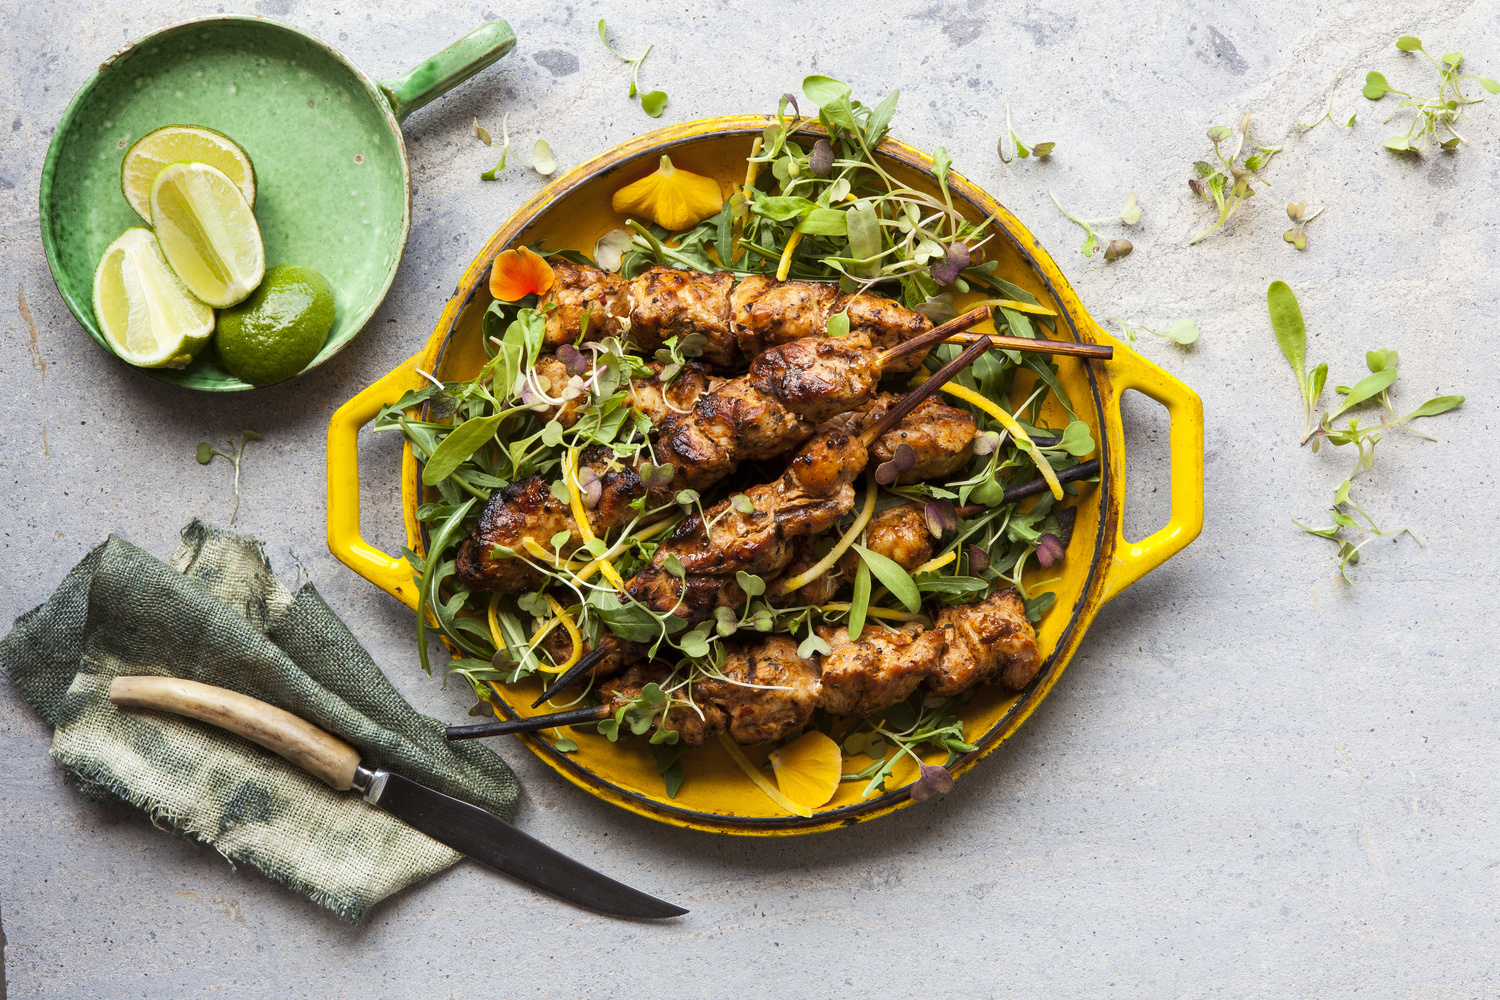 Sumac Chicken Spices and Herbs